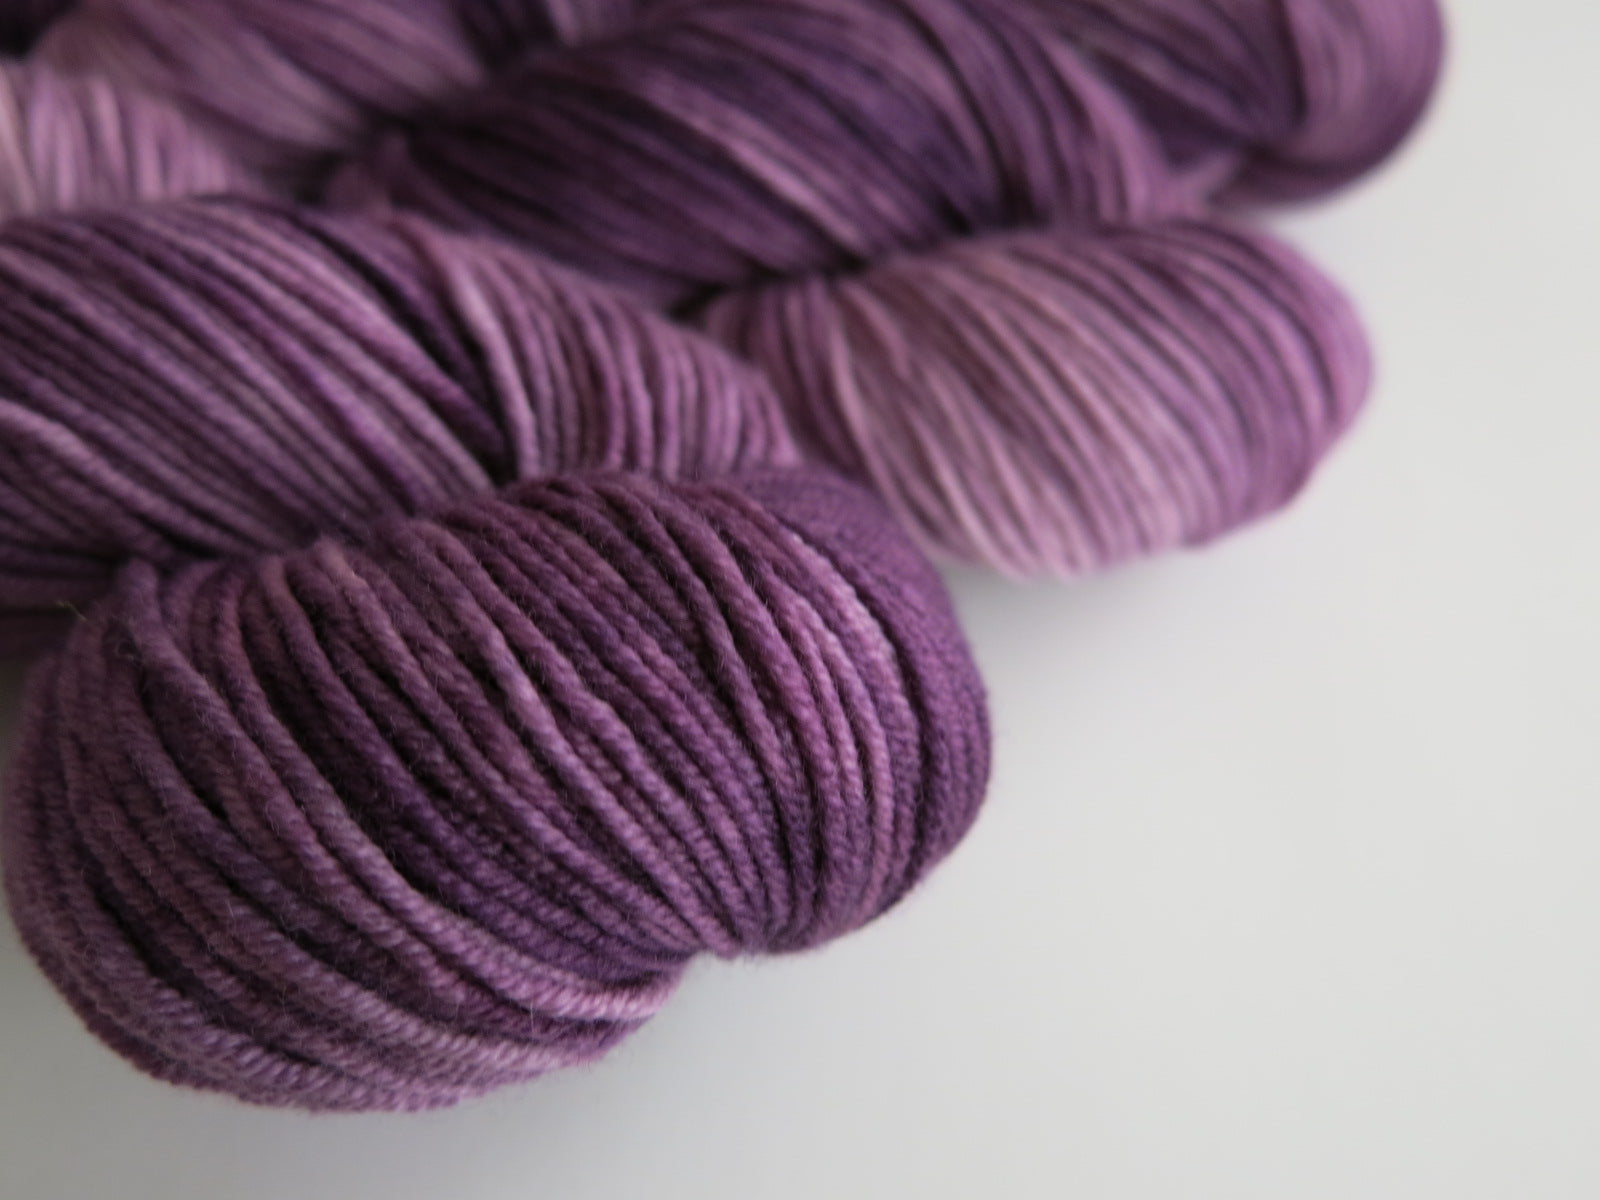 8 ply merino yarn in tonal purple for knitting and crochet